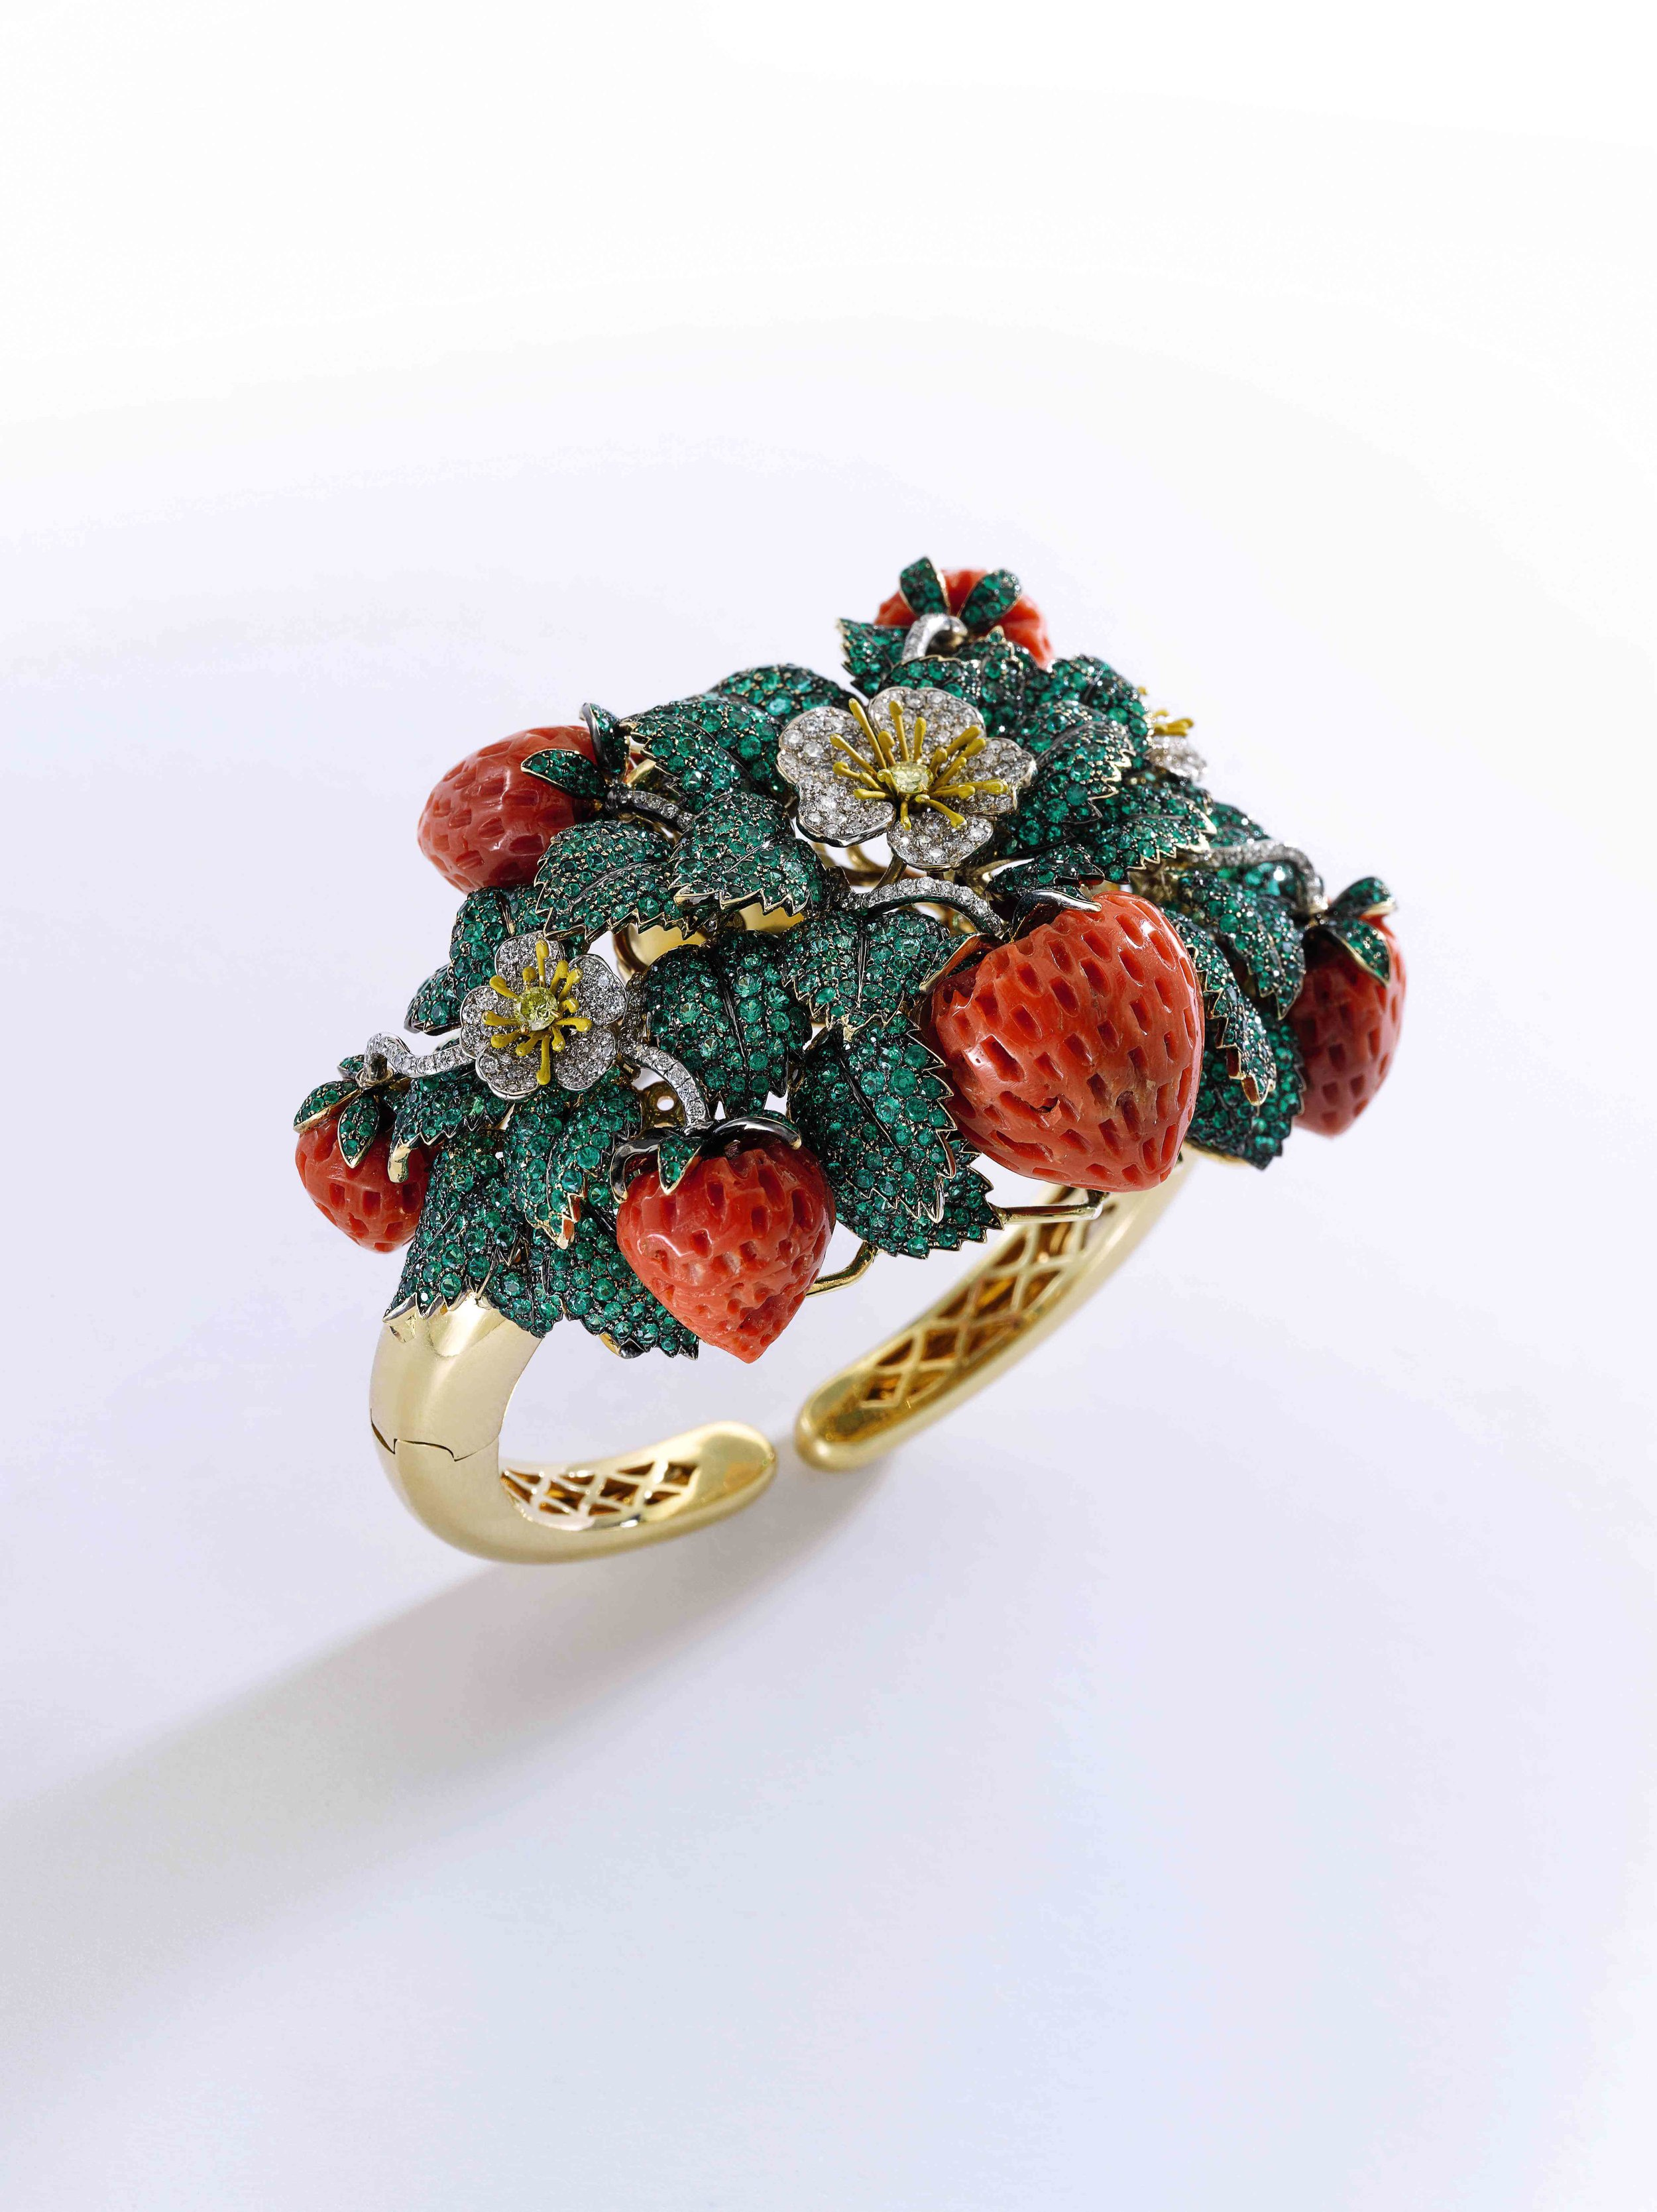 Coral, emerald, enamel and diamond bangle, 'Fragole' Of strawberry design, the fruits carved in coral, the leaves pavé-set with emeralds, the flowers and stems set with diamonds